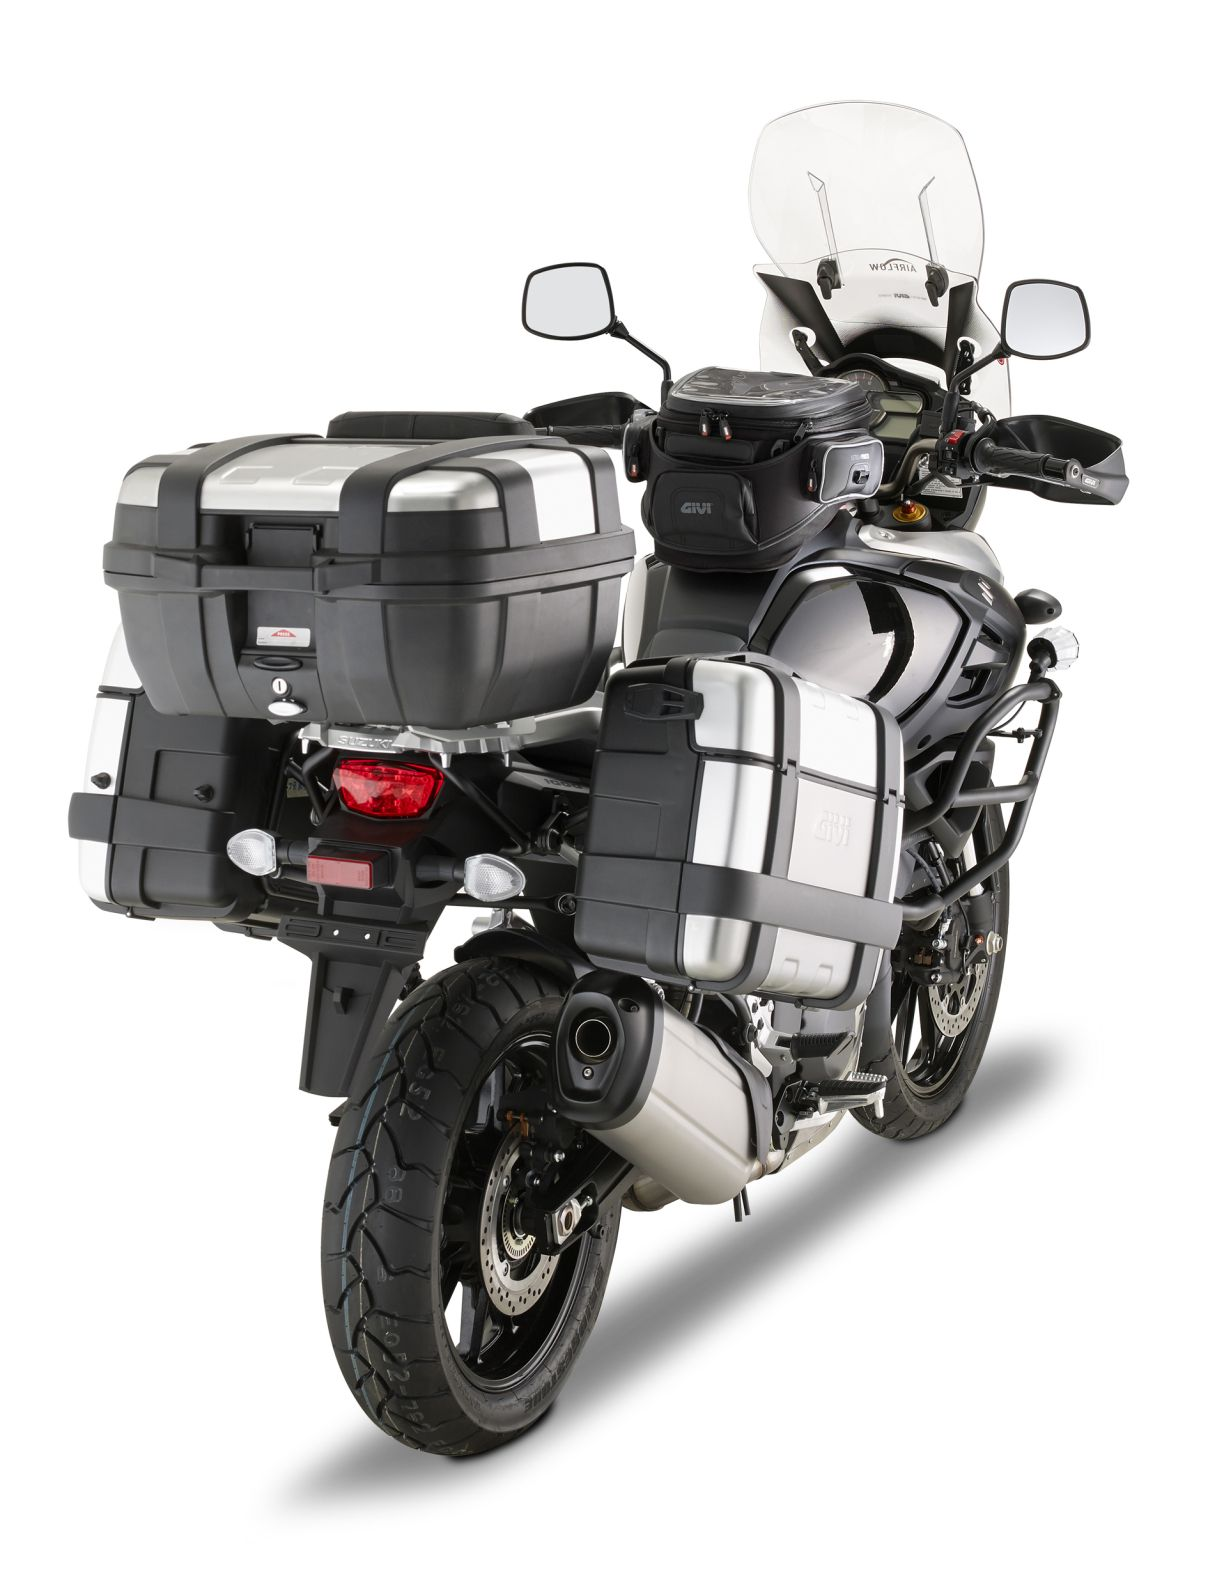 Givi Release Photos Of V Strom 1000 2014 Accessories Bike Accessories Touring Bike Adventure Bike